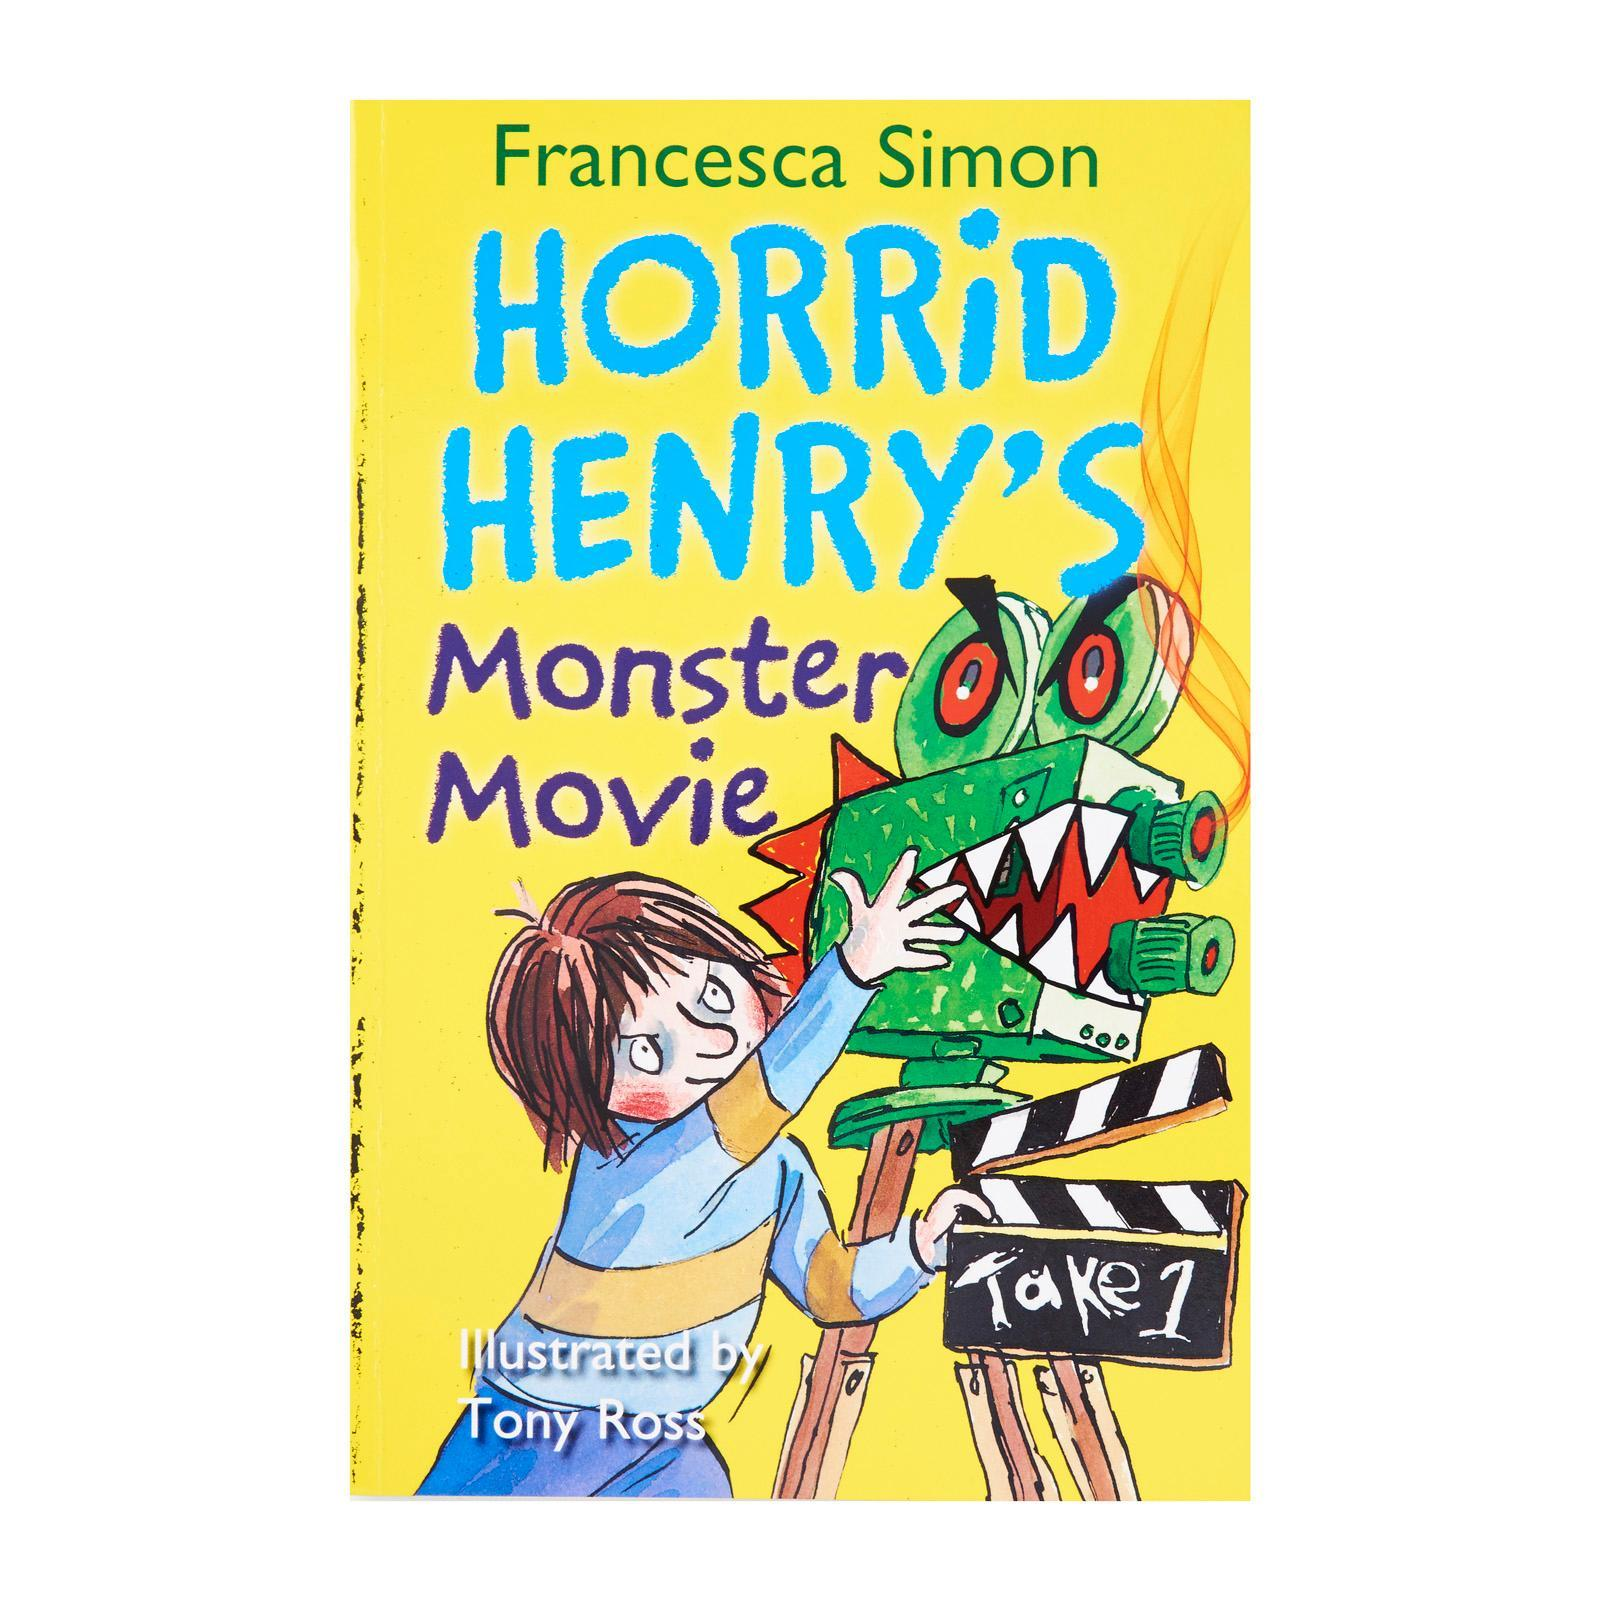 Horrid Henry By Tony Ross Horrid Henry's Monster Movie